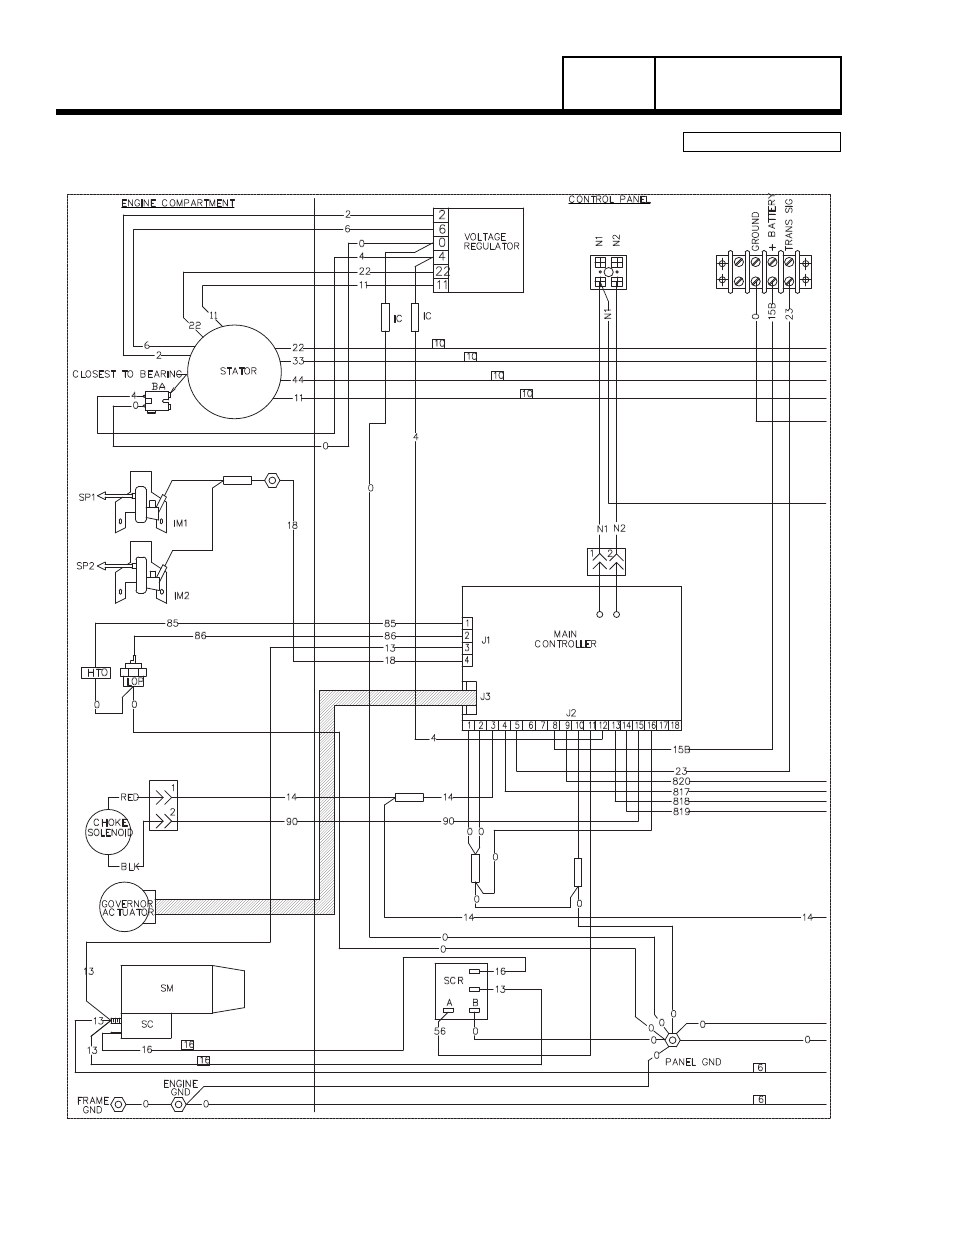 Wiring diagram, 17 kw home standby, Group g, Part 7 | Generac Power